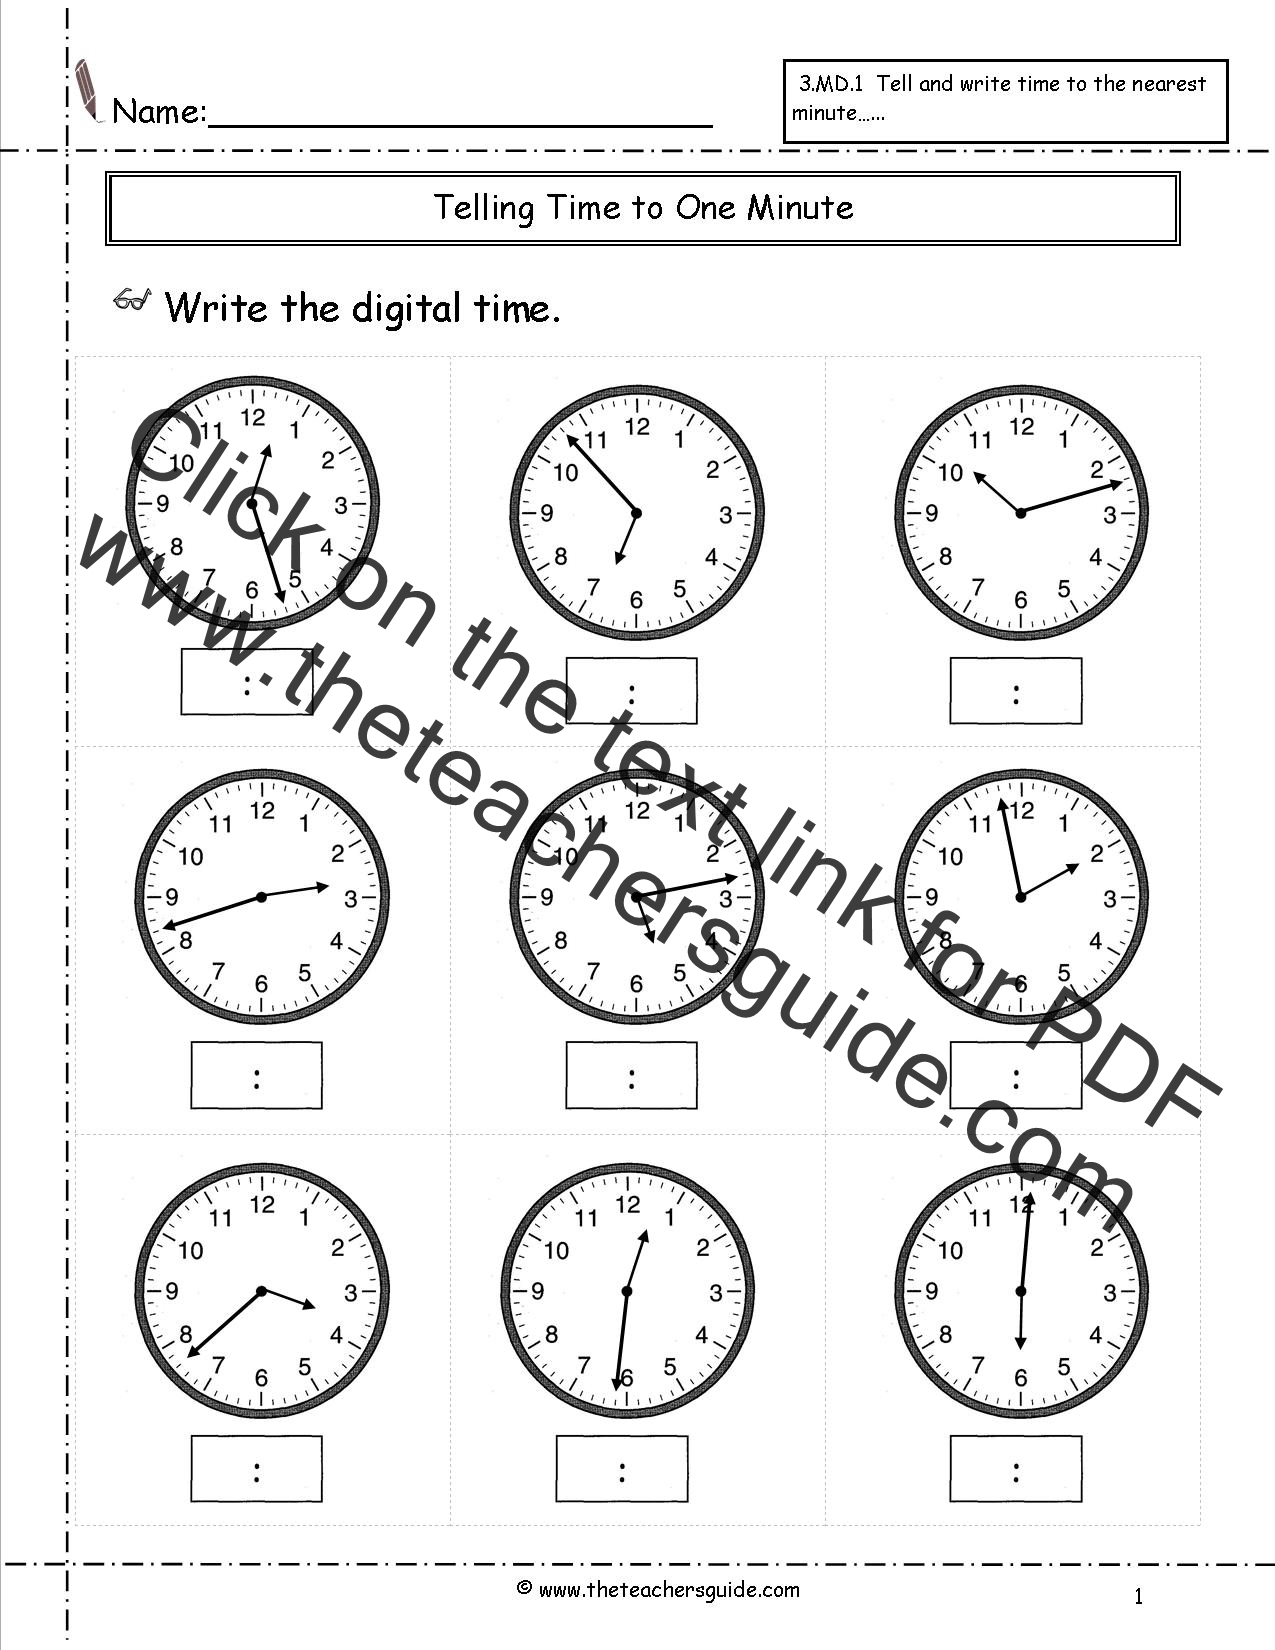 Worksheet Telling Time Work Sheets telling time worksheets from the teachers guide to nearest minute 2